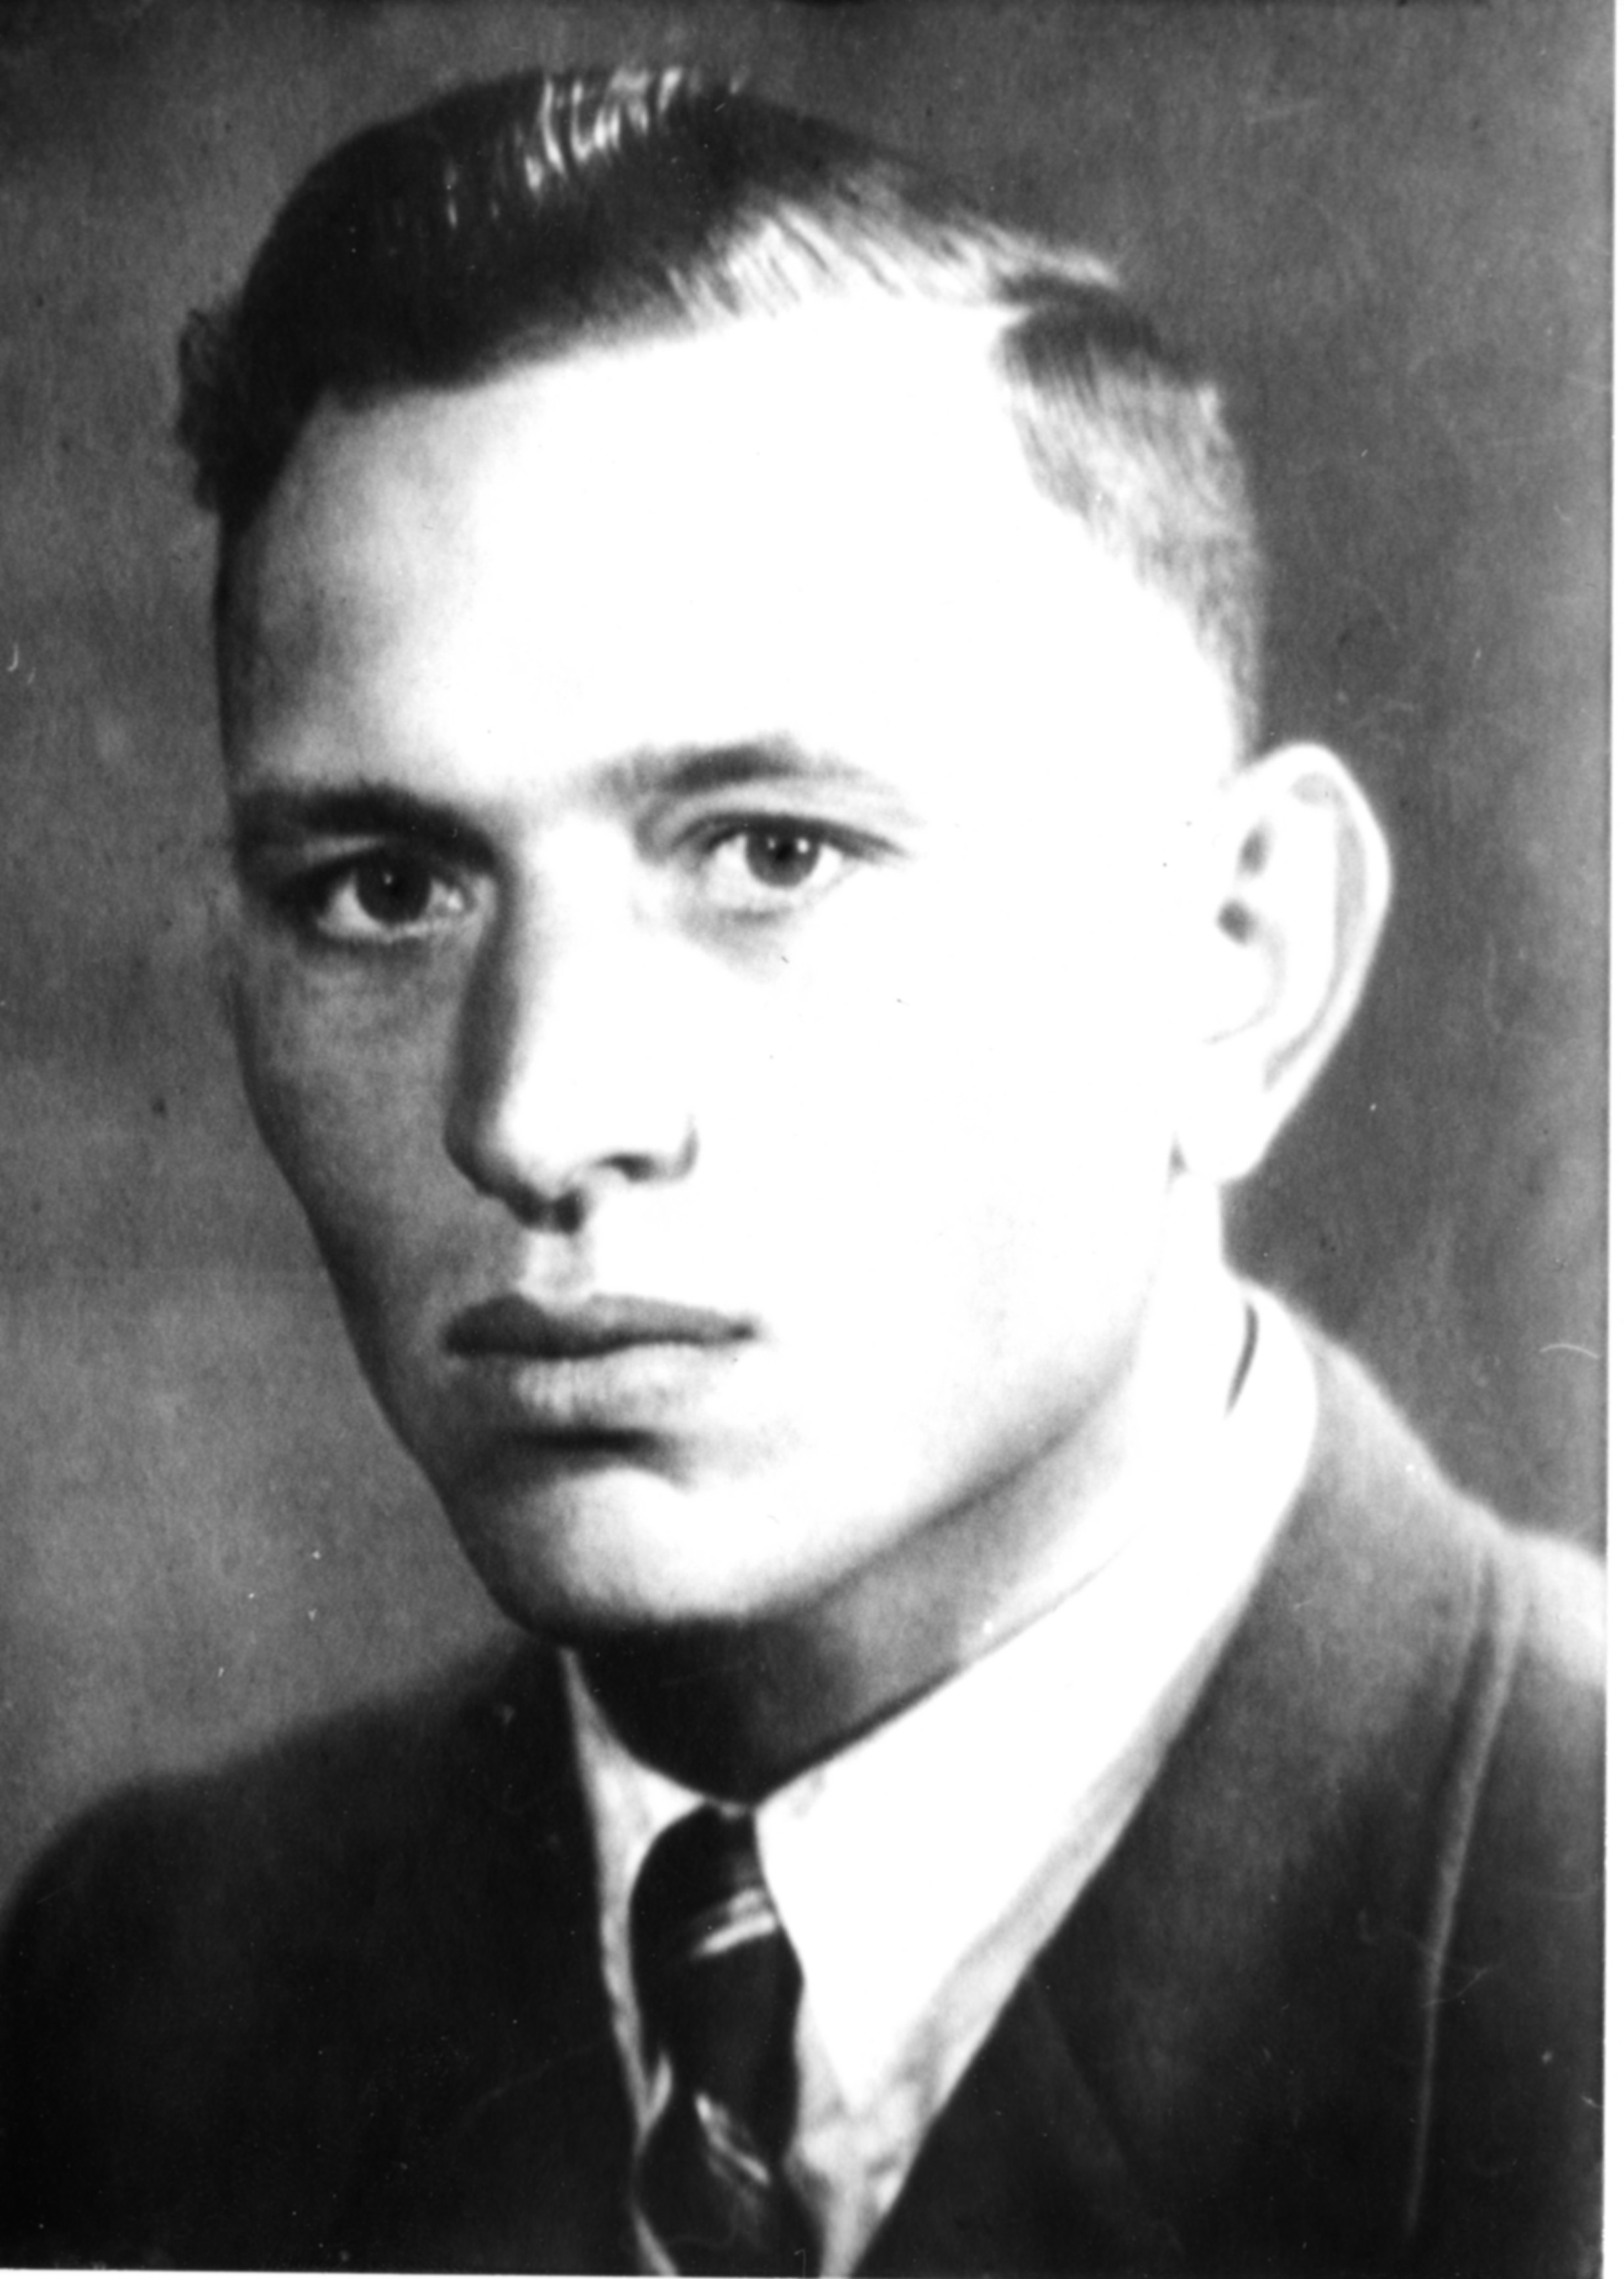 Anton Schubert<br>Photo: Archive of the Austrian Communist Party